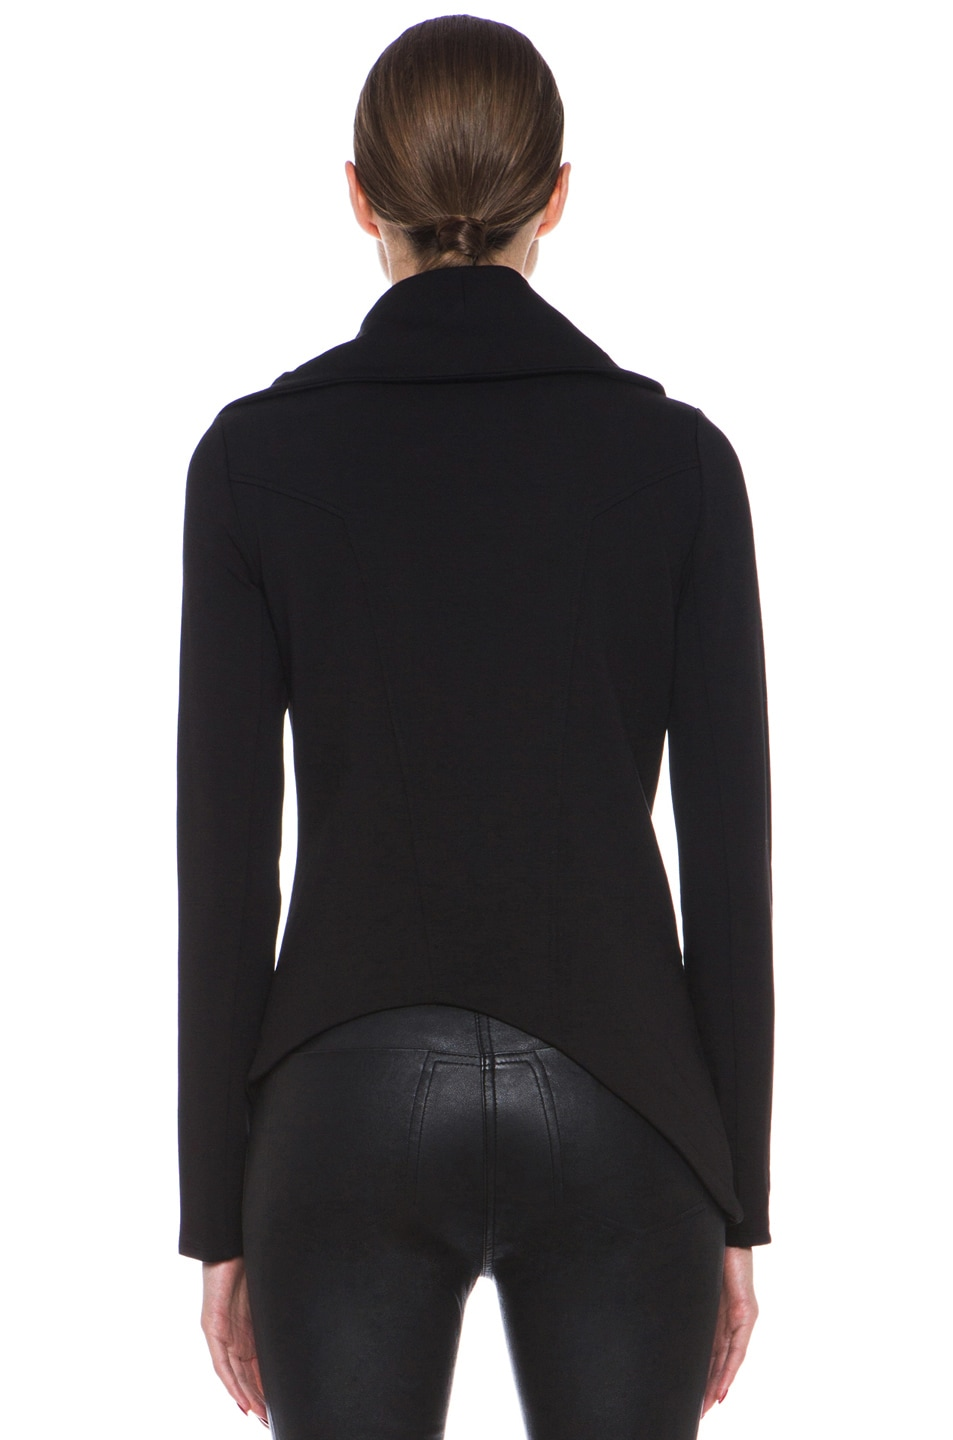 Image 5 of HELMUT Helmut Lang Villus Zip Up Sweatshirt Jacket in Black